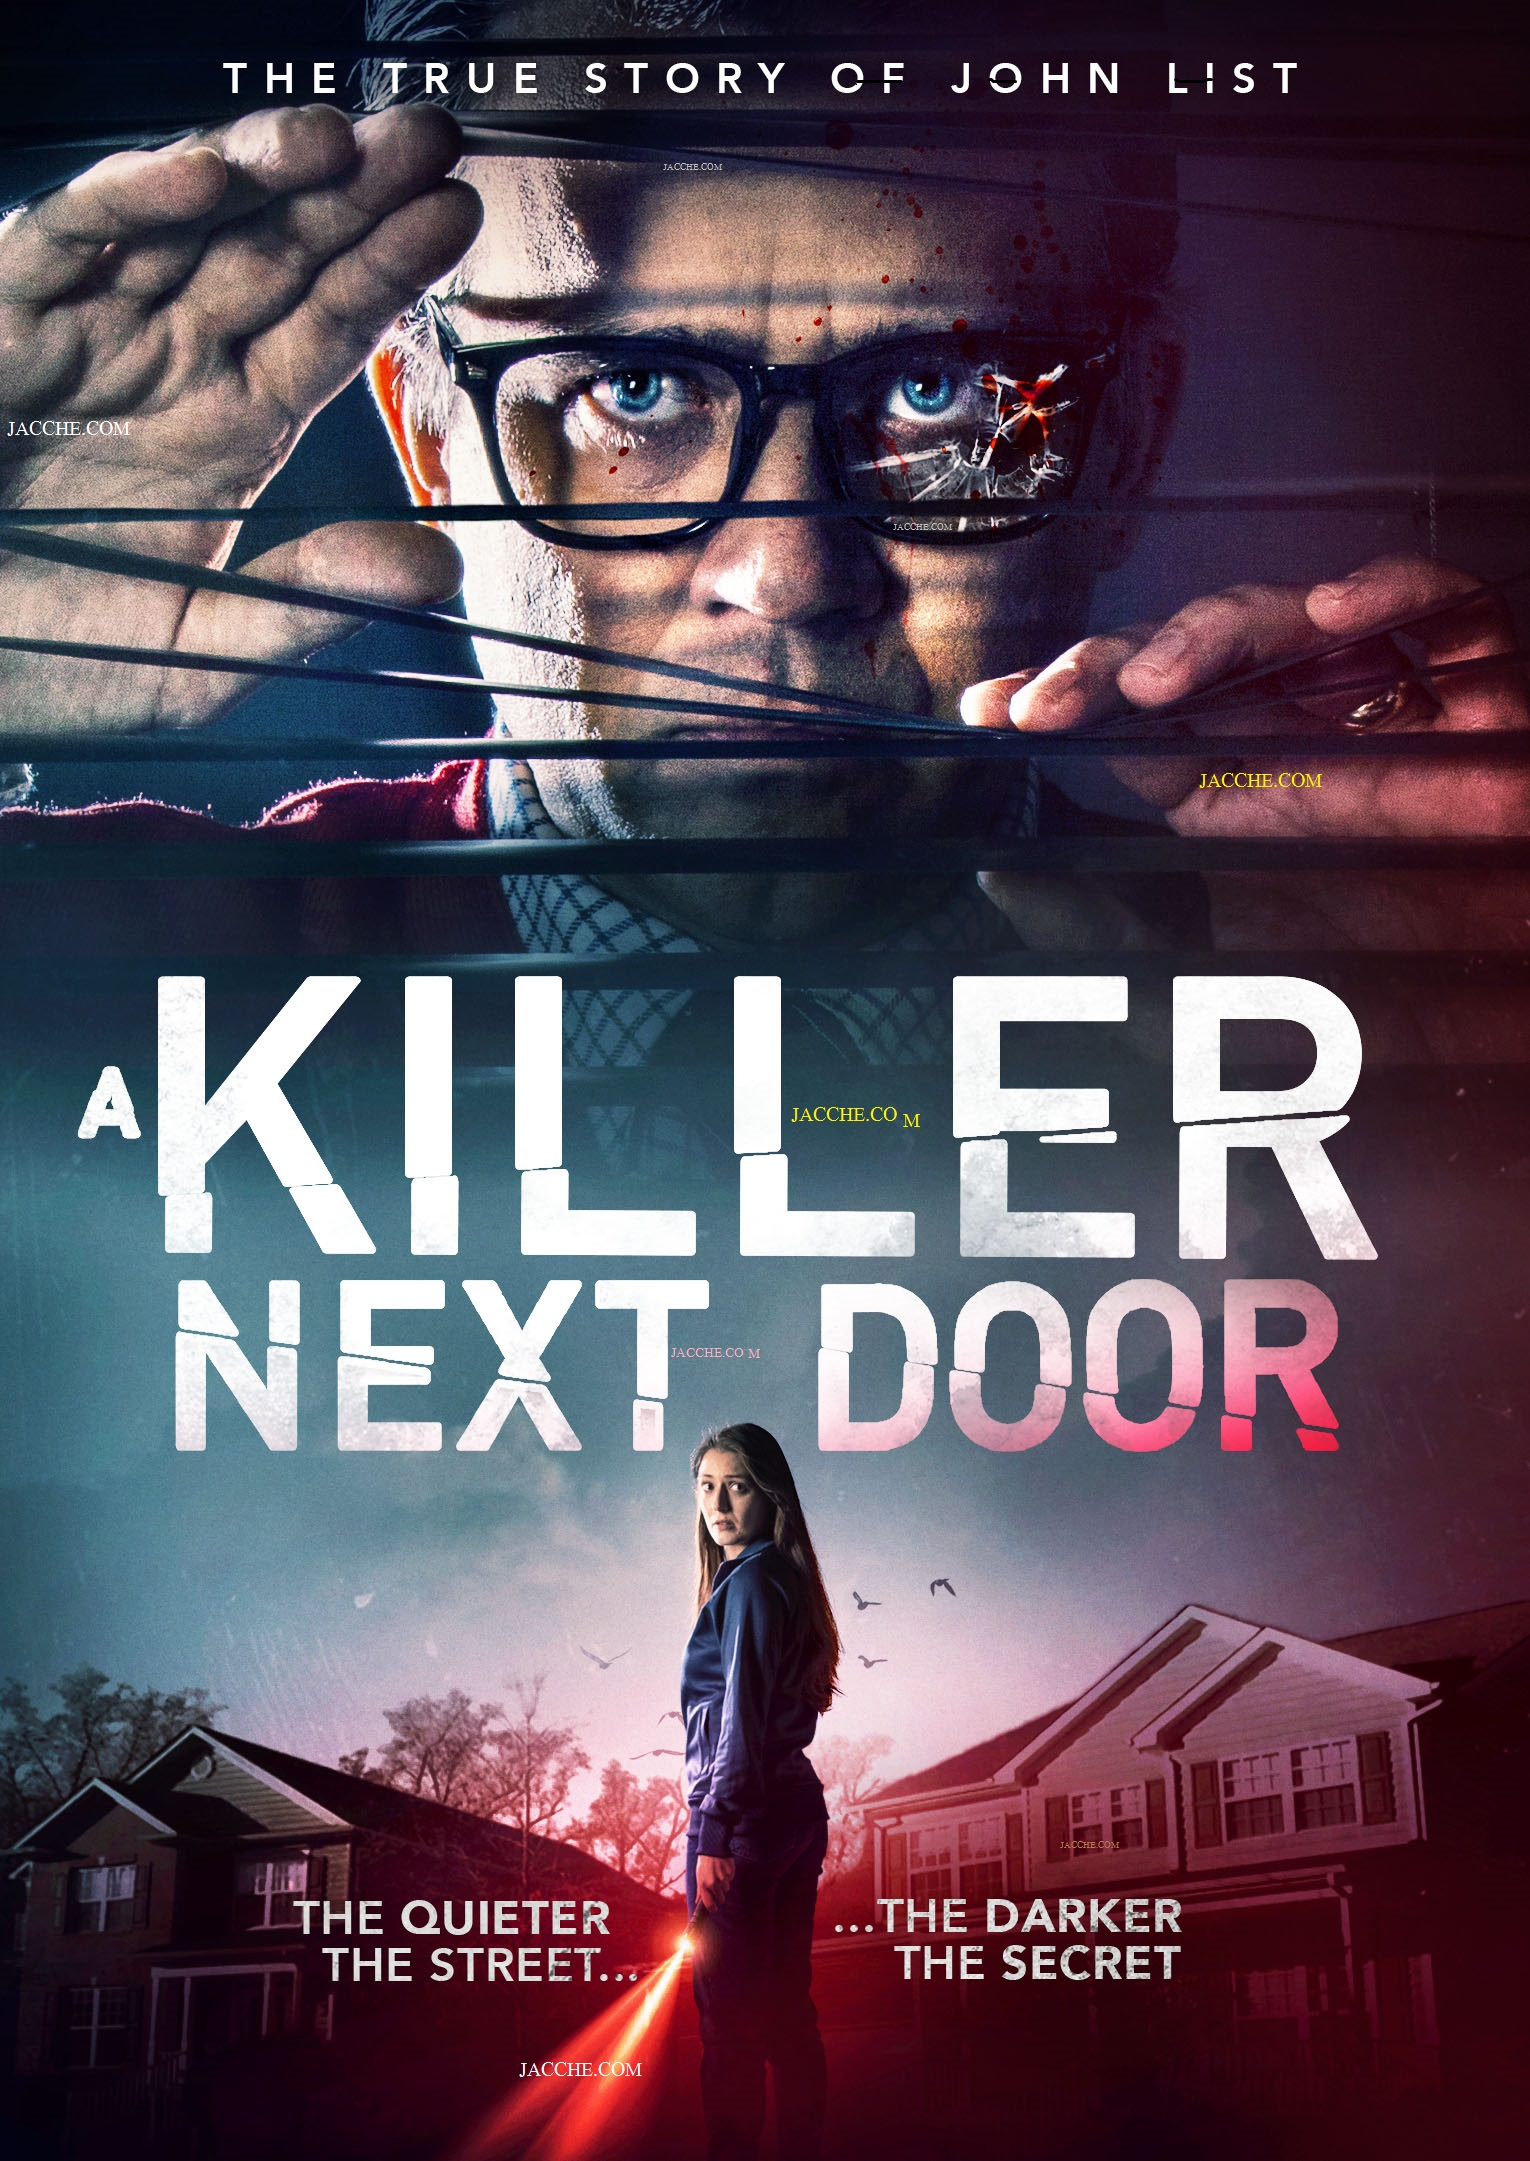 A Killer Next Door Movie Image